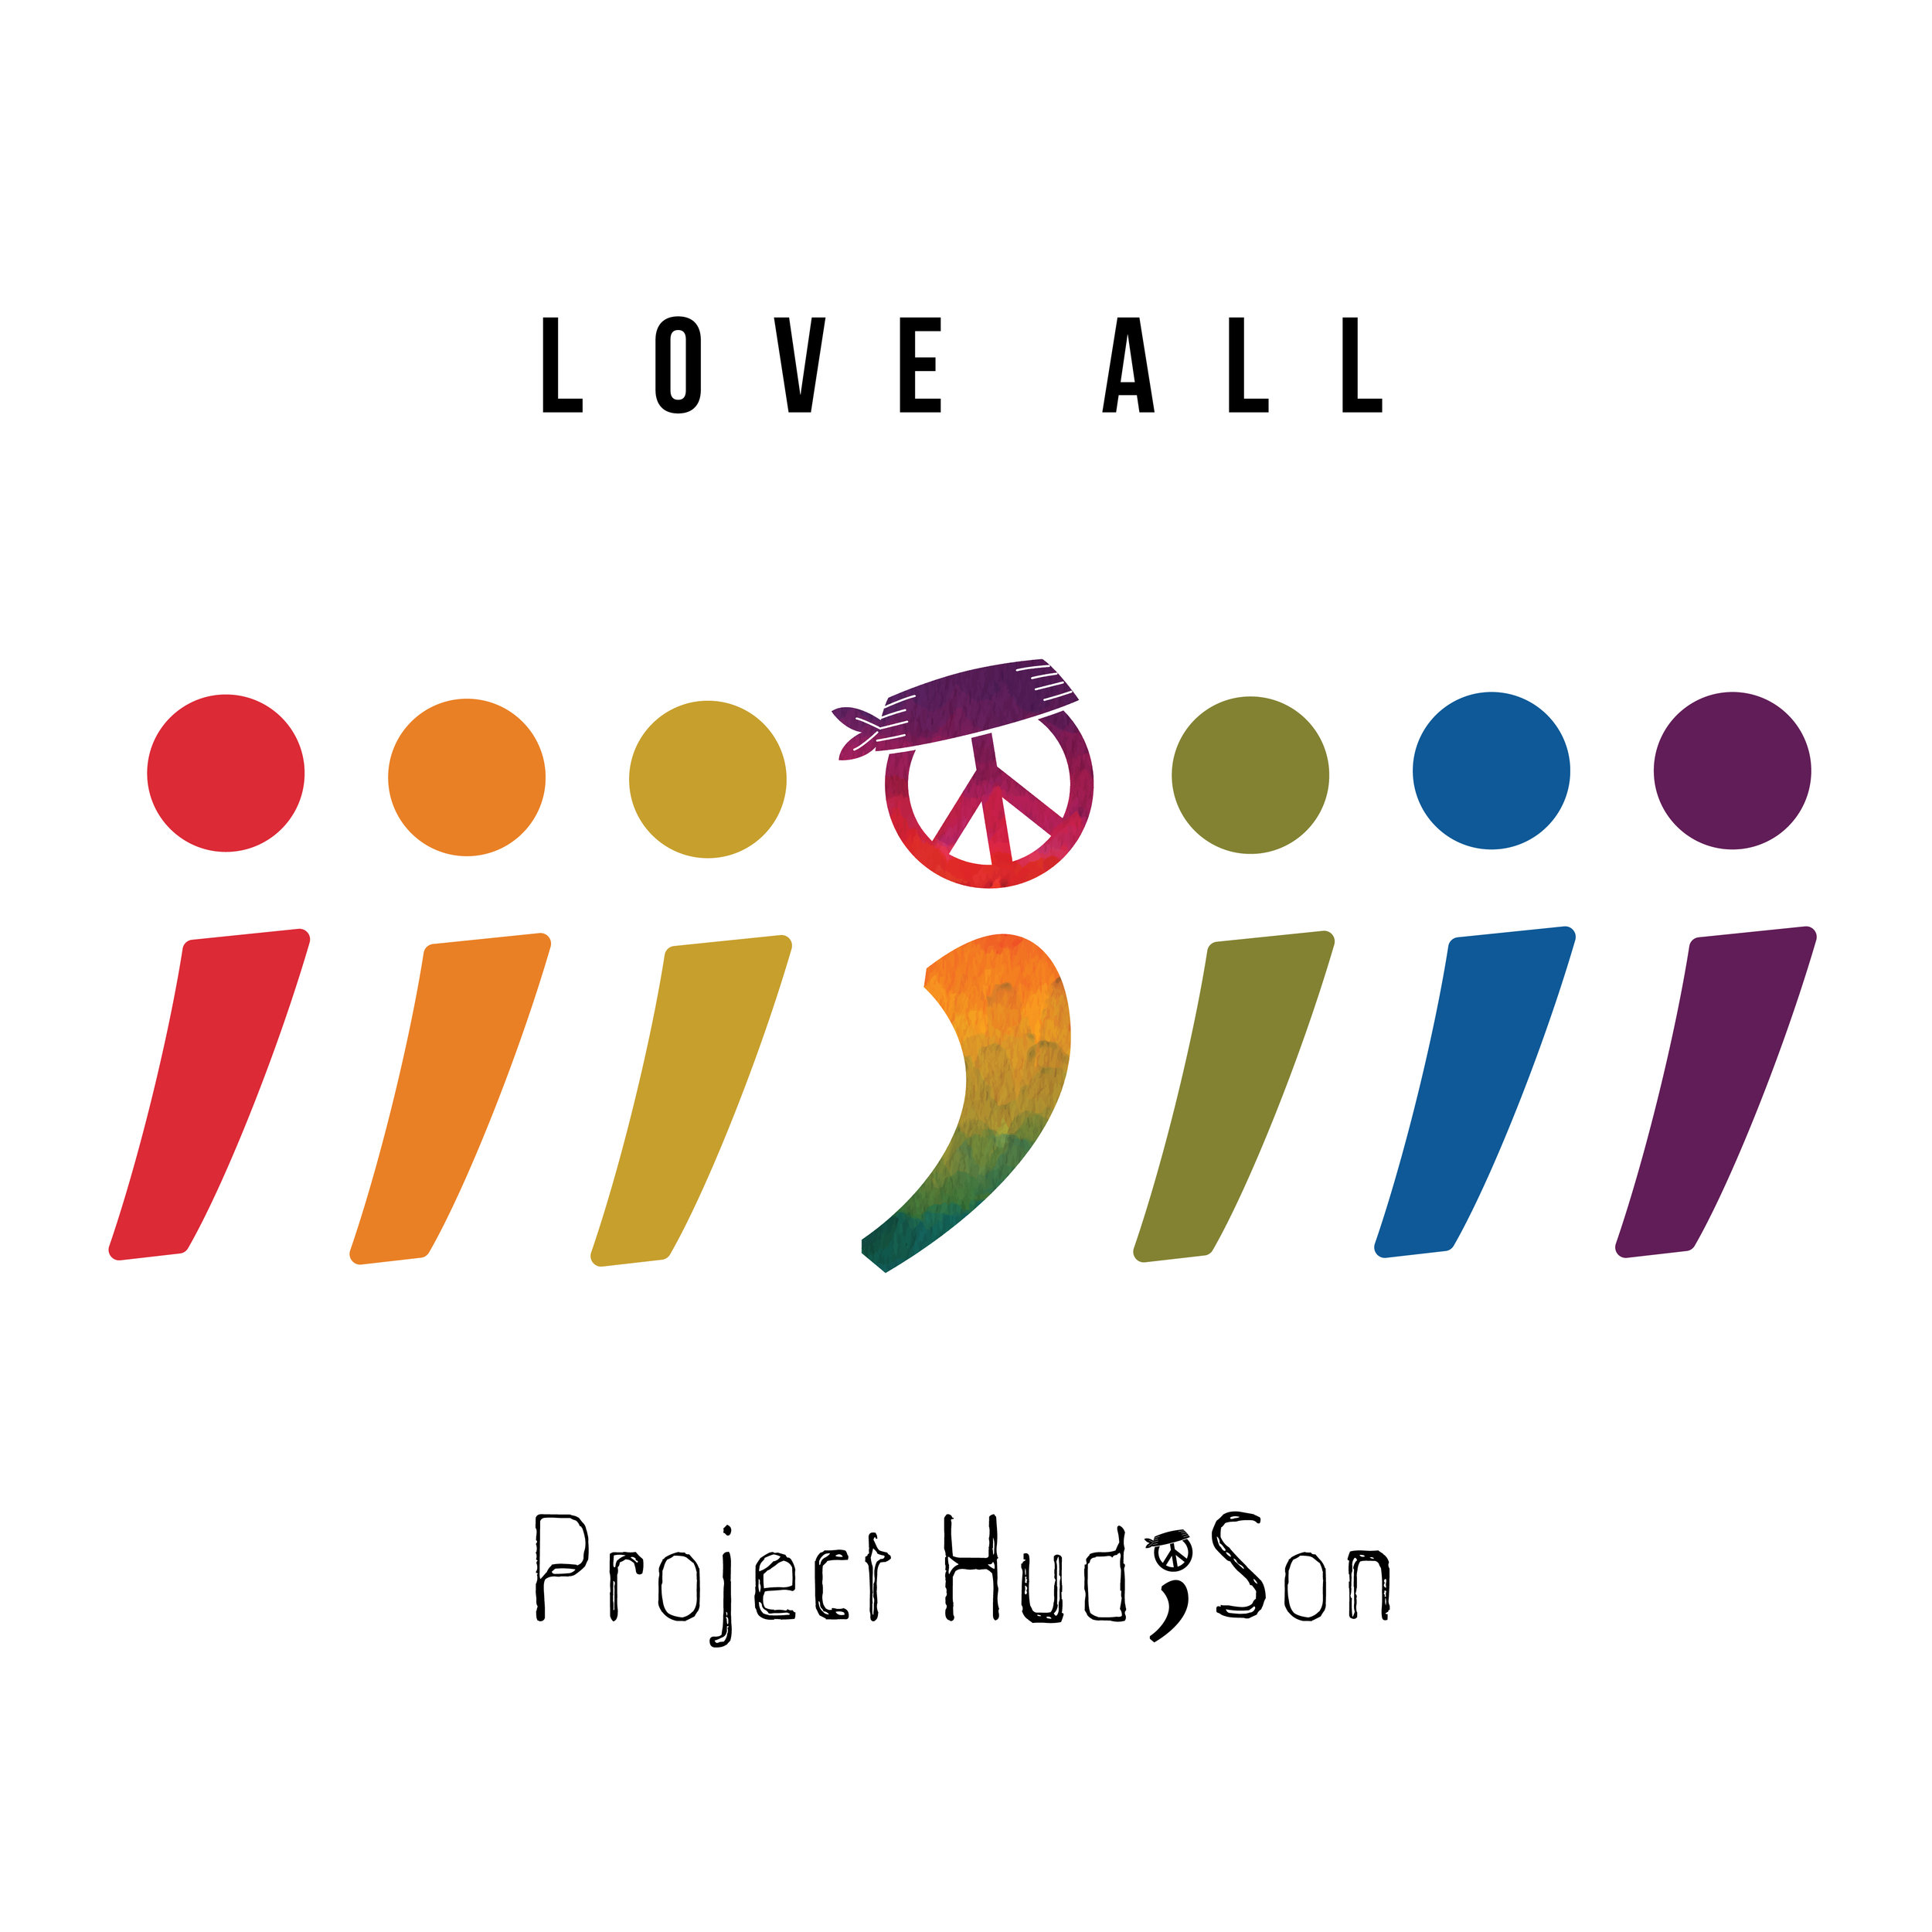 Wut up, son? - project hud;son - Click link below.